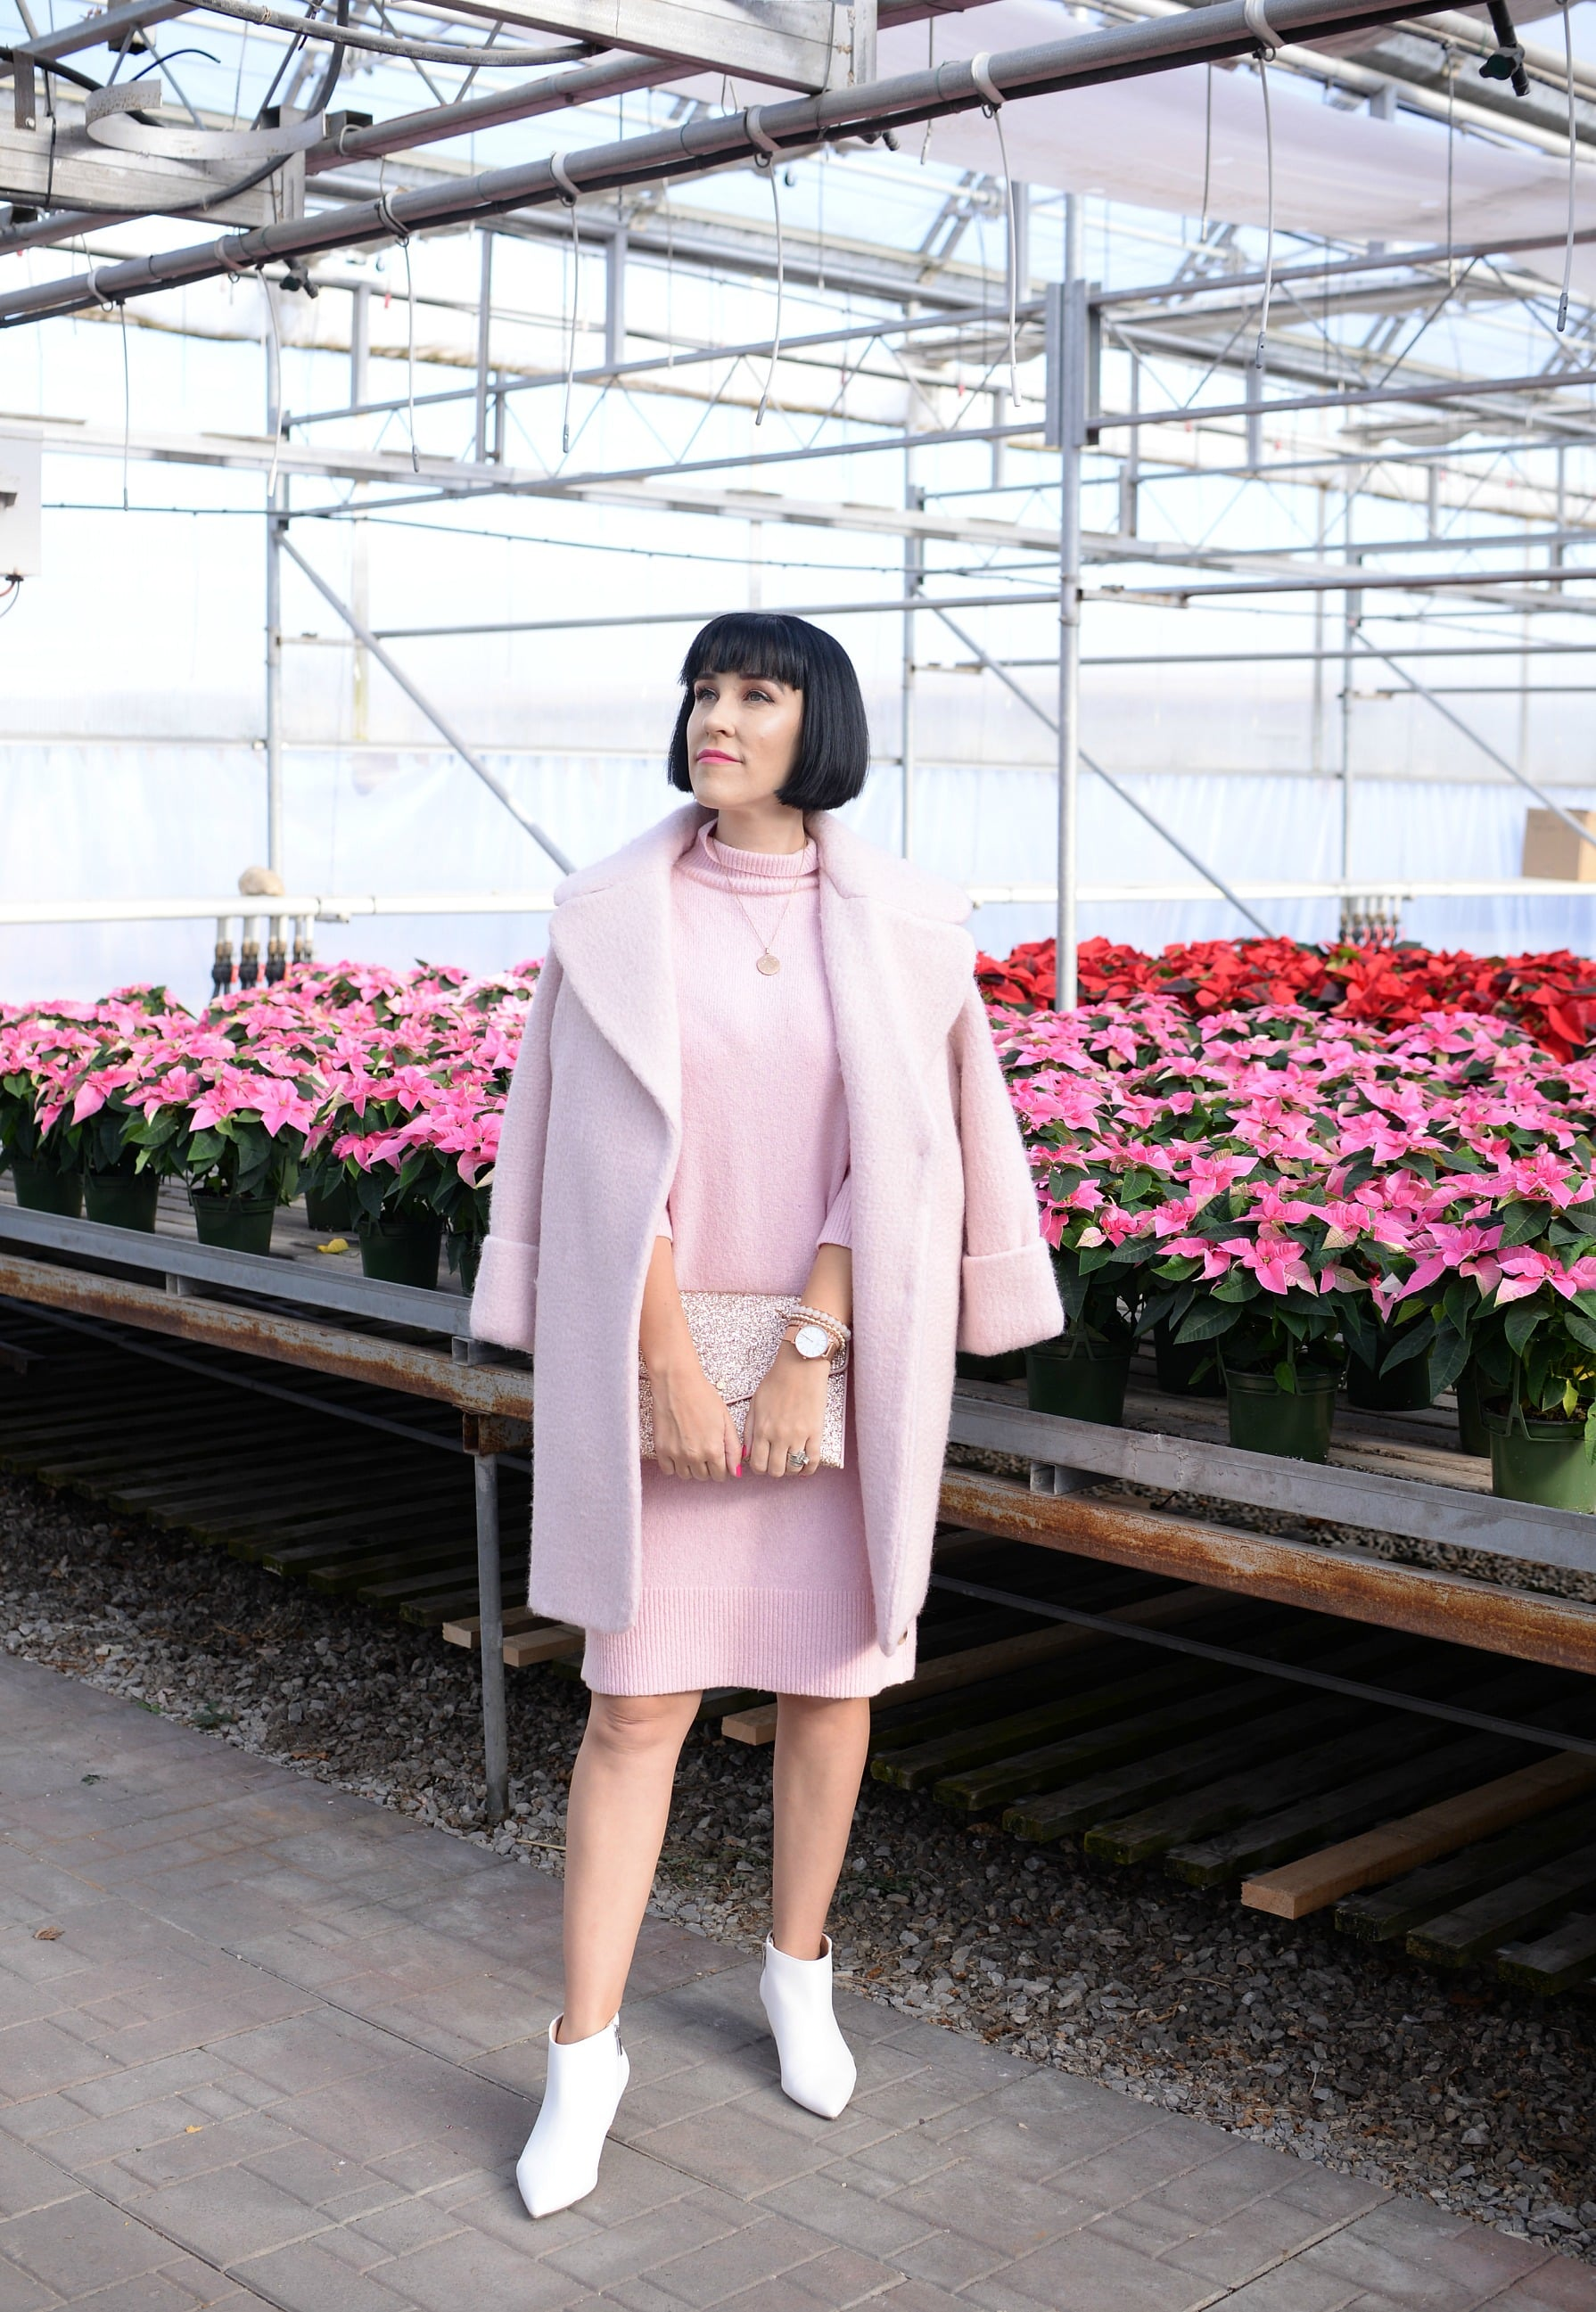 What Does Your Zodiac Sign Say About You?, Victoria Emerson Zodiac Collection, Victoria Emerson, Zodiac jewelry, zodiac jewellery, Canadian fashion blogger, pink banana republic dress, pink sweater dress, rose gold jewellery, pink ever new winter coat